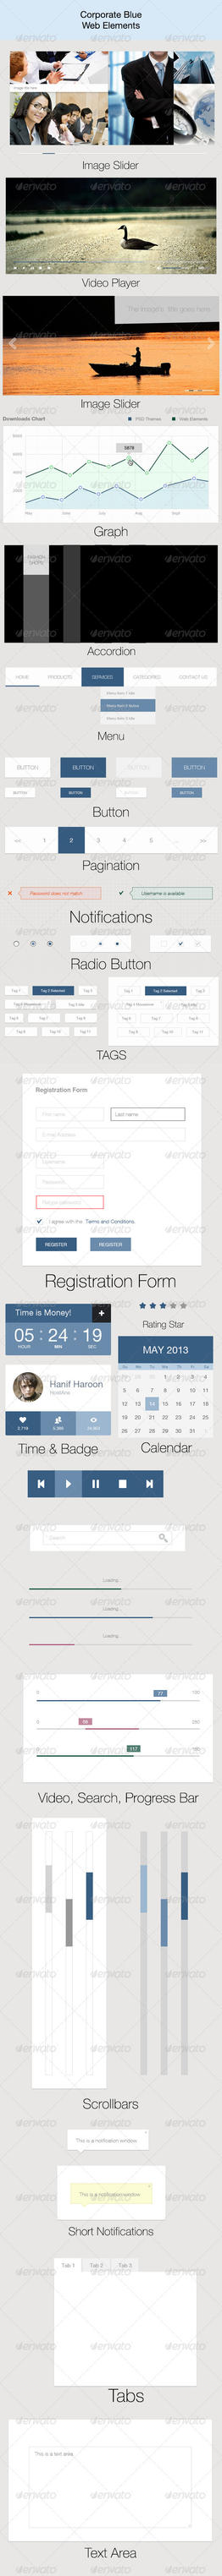 Corporate Blue Web Elements by hanifharoon